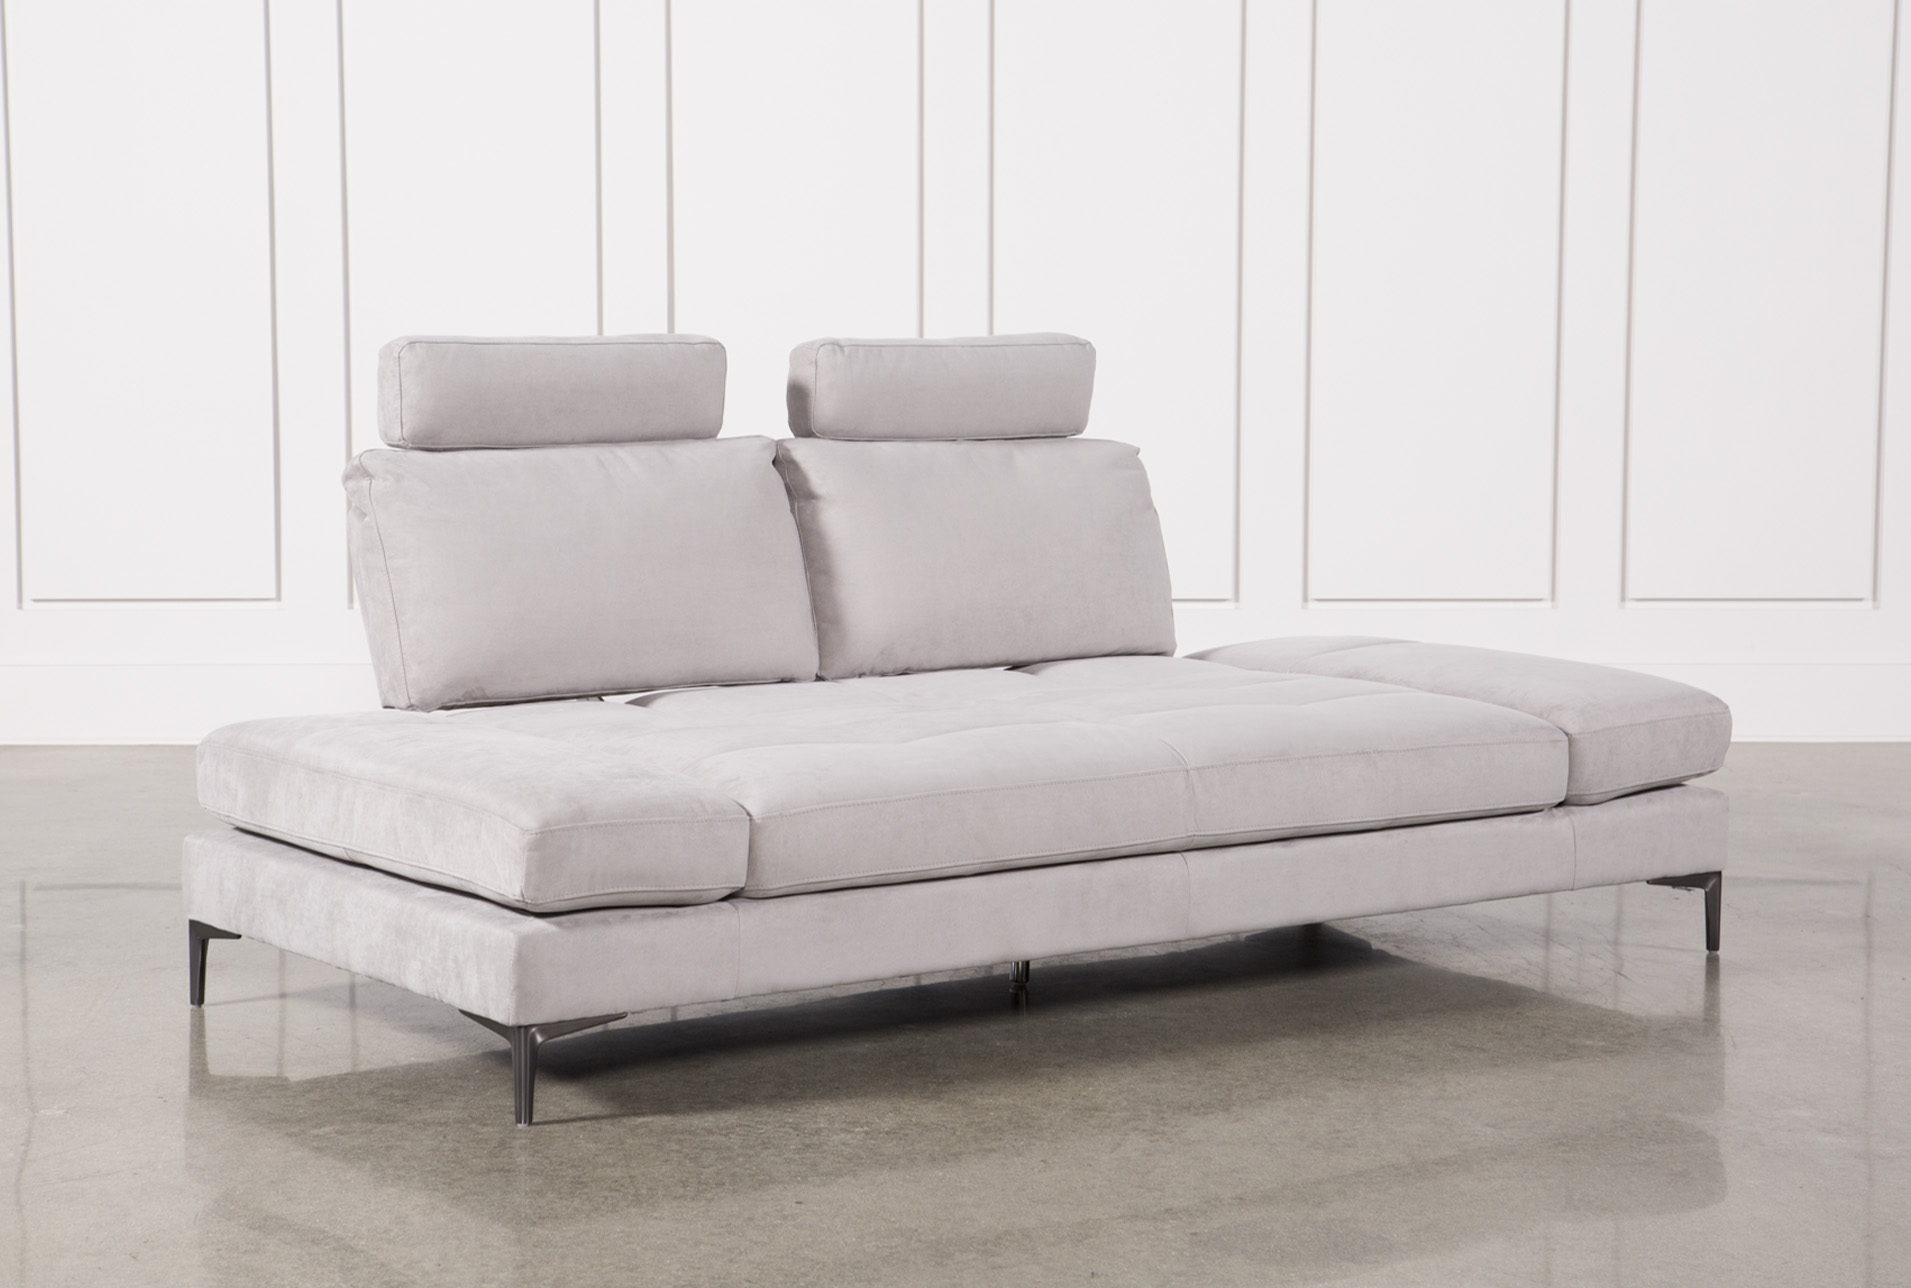 pottery barn deluxe sleeper sofa reviews multi purpose design how to choose between a daybed or